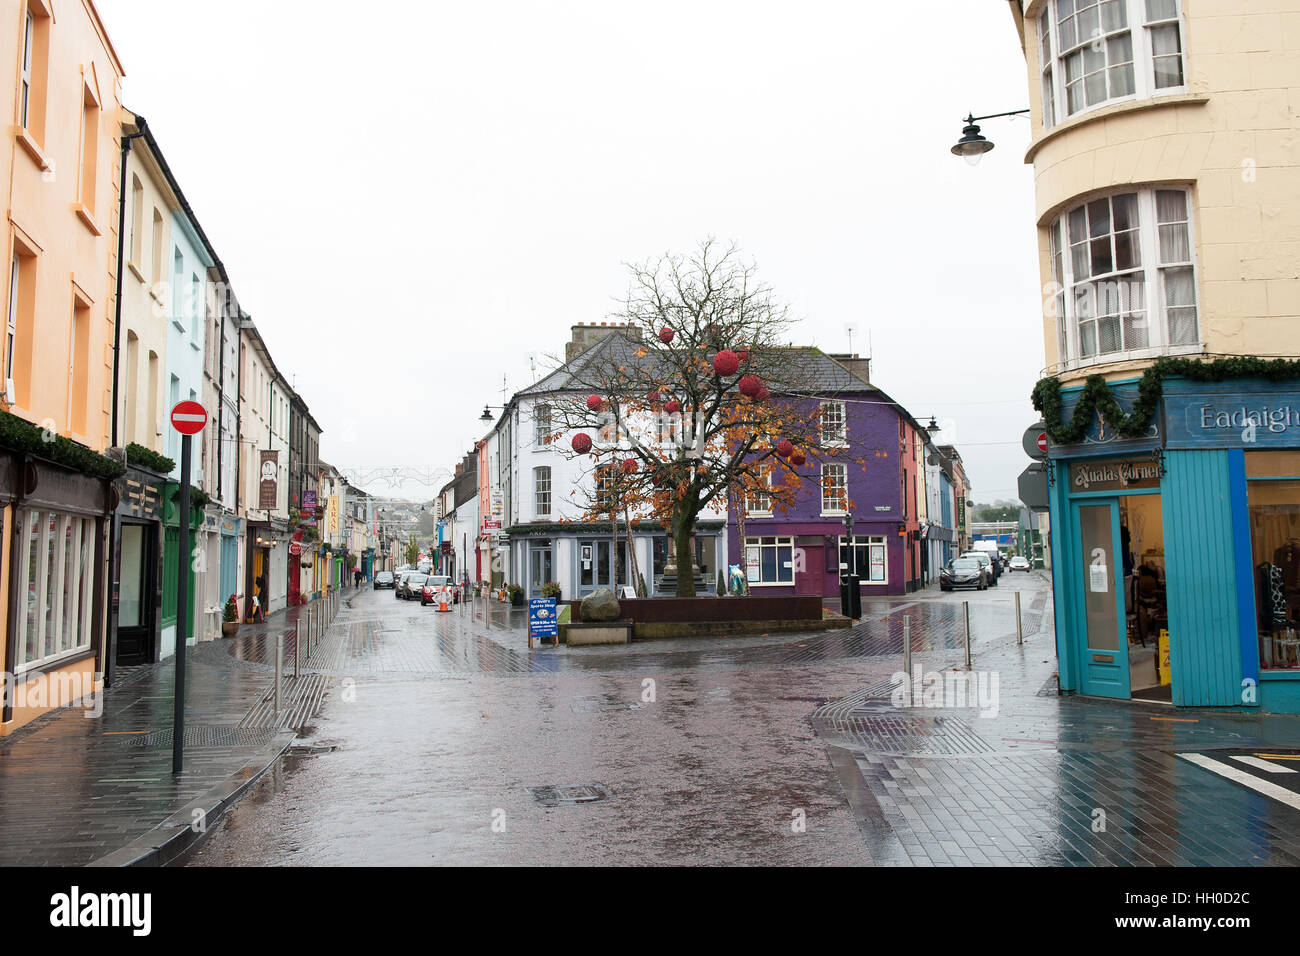 The colourful shopfronts in Clonakilty, West Cork, Ireland which is a tourist destination on the wild atlantic way. - Stock Image